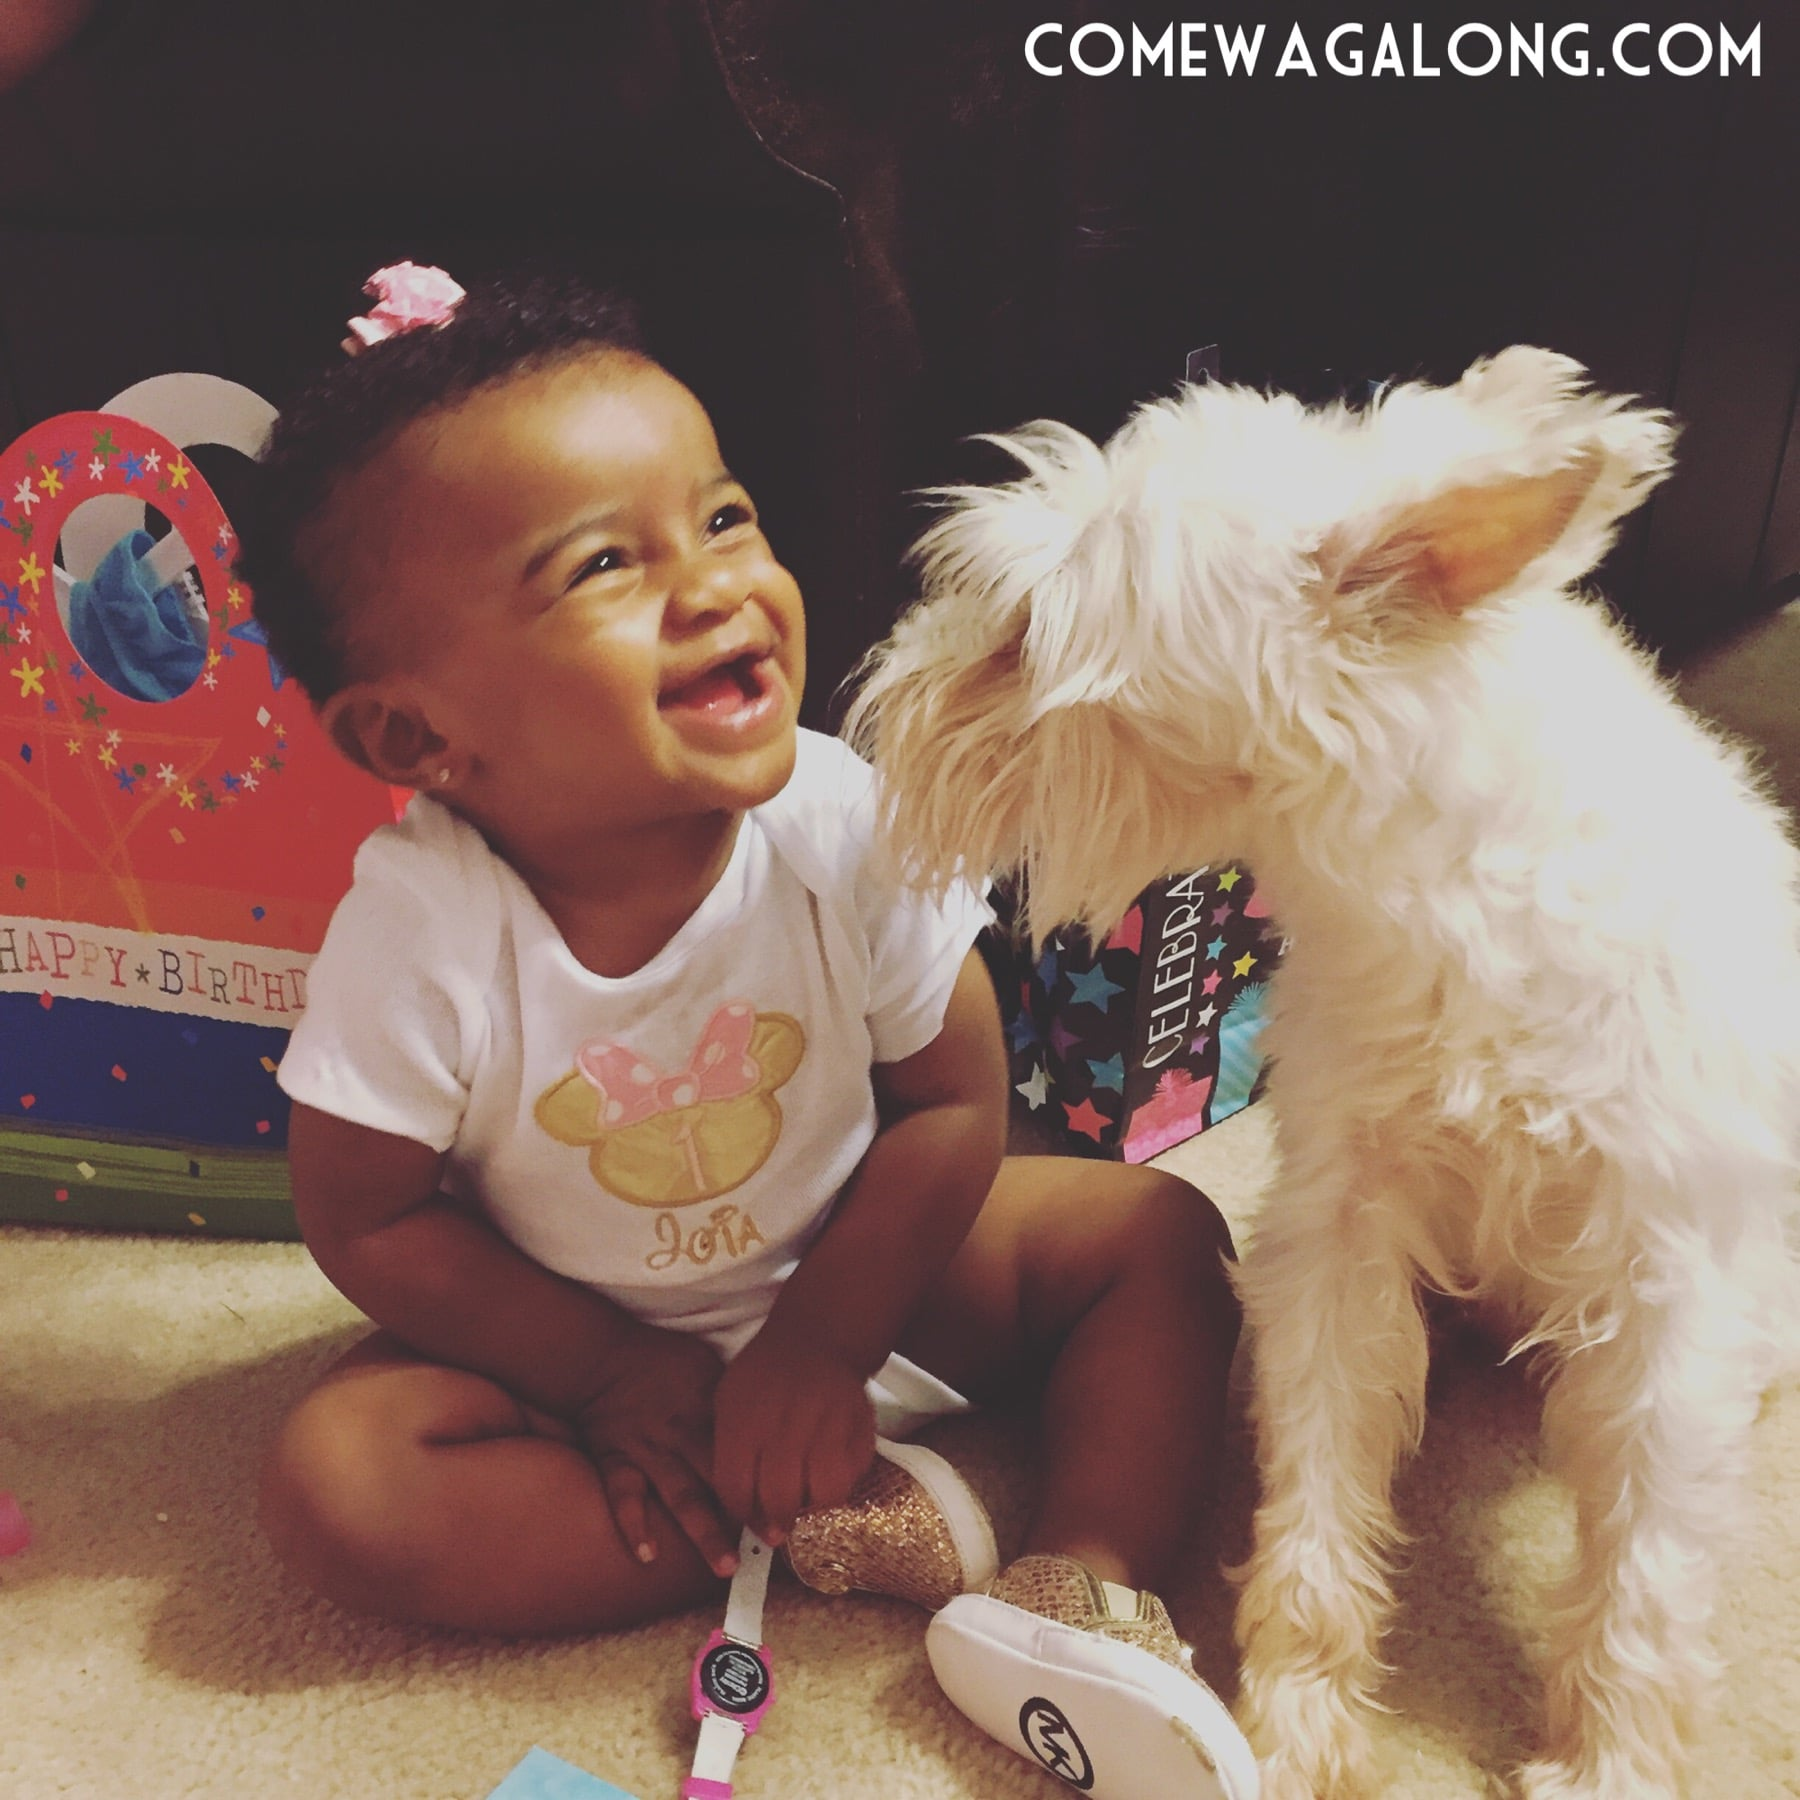 Baby and dog celebrate first birthday - ComeWagAlong.com